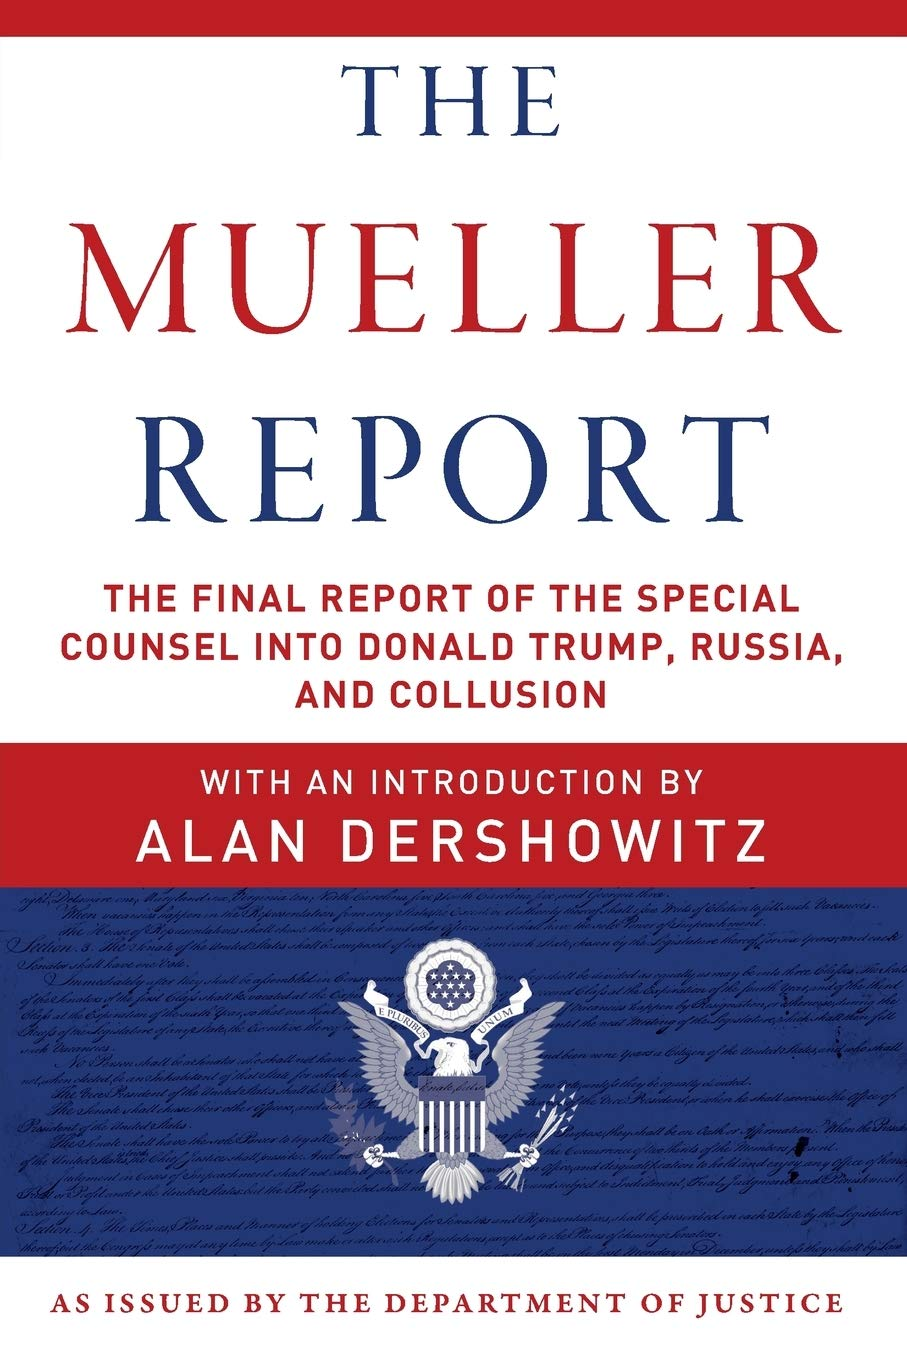 Image OfThe Mueller Report: The Final Report Of The Special Counsel Into Donald Trump, Russia, And Collusion